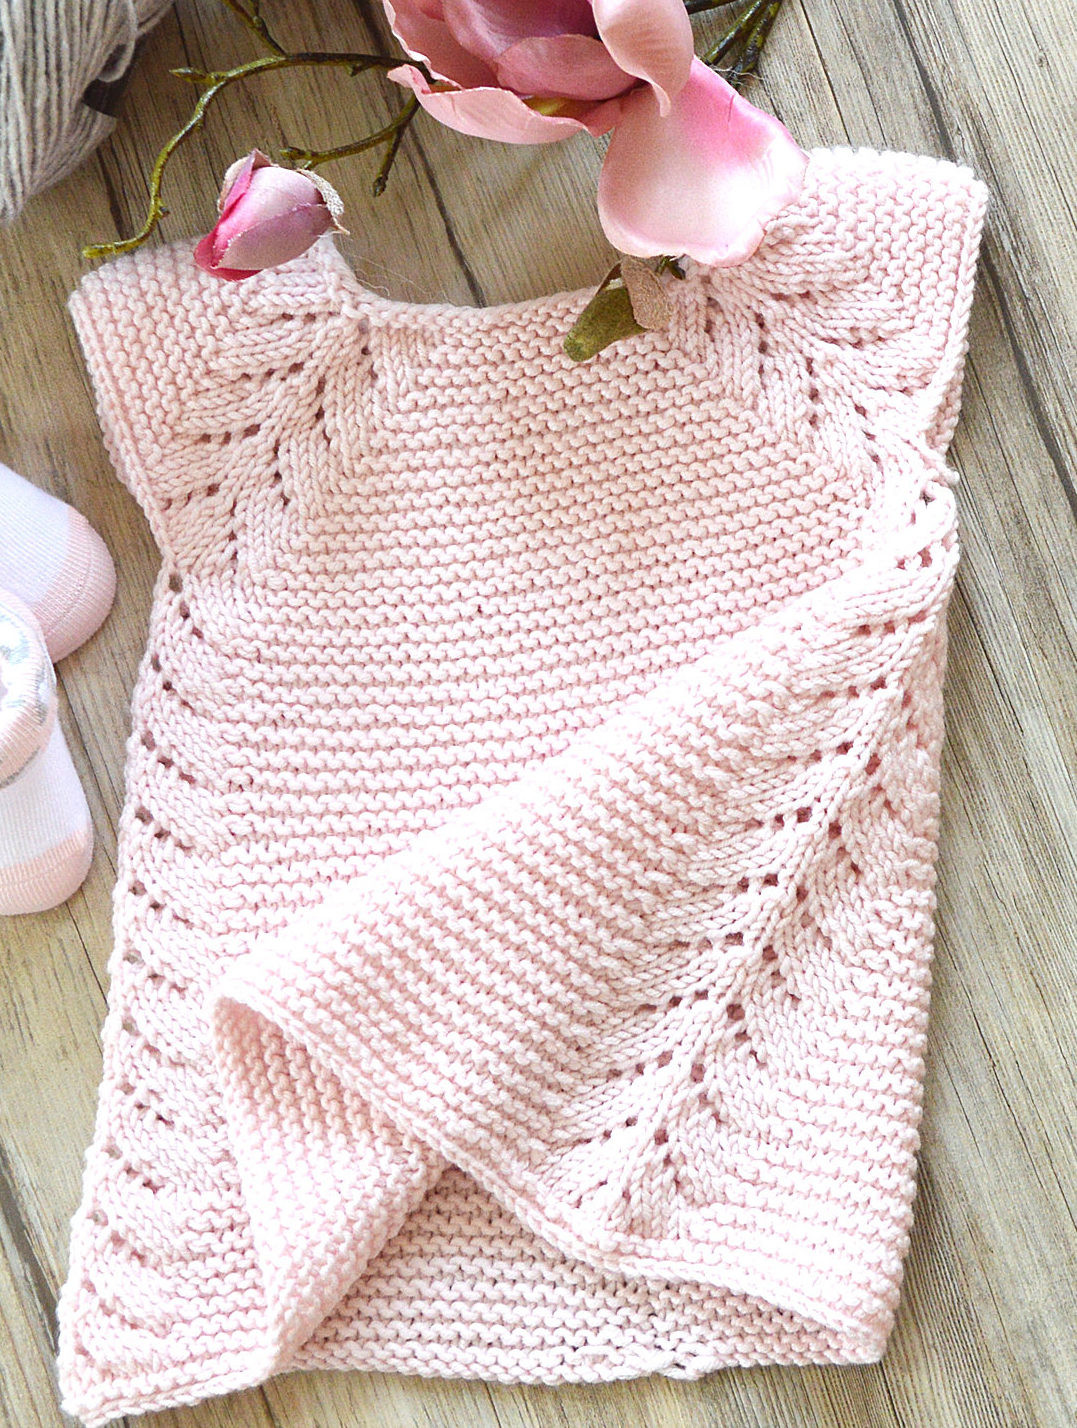 Dresses and Skirts for Children Knitting Patterns